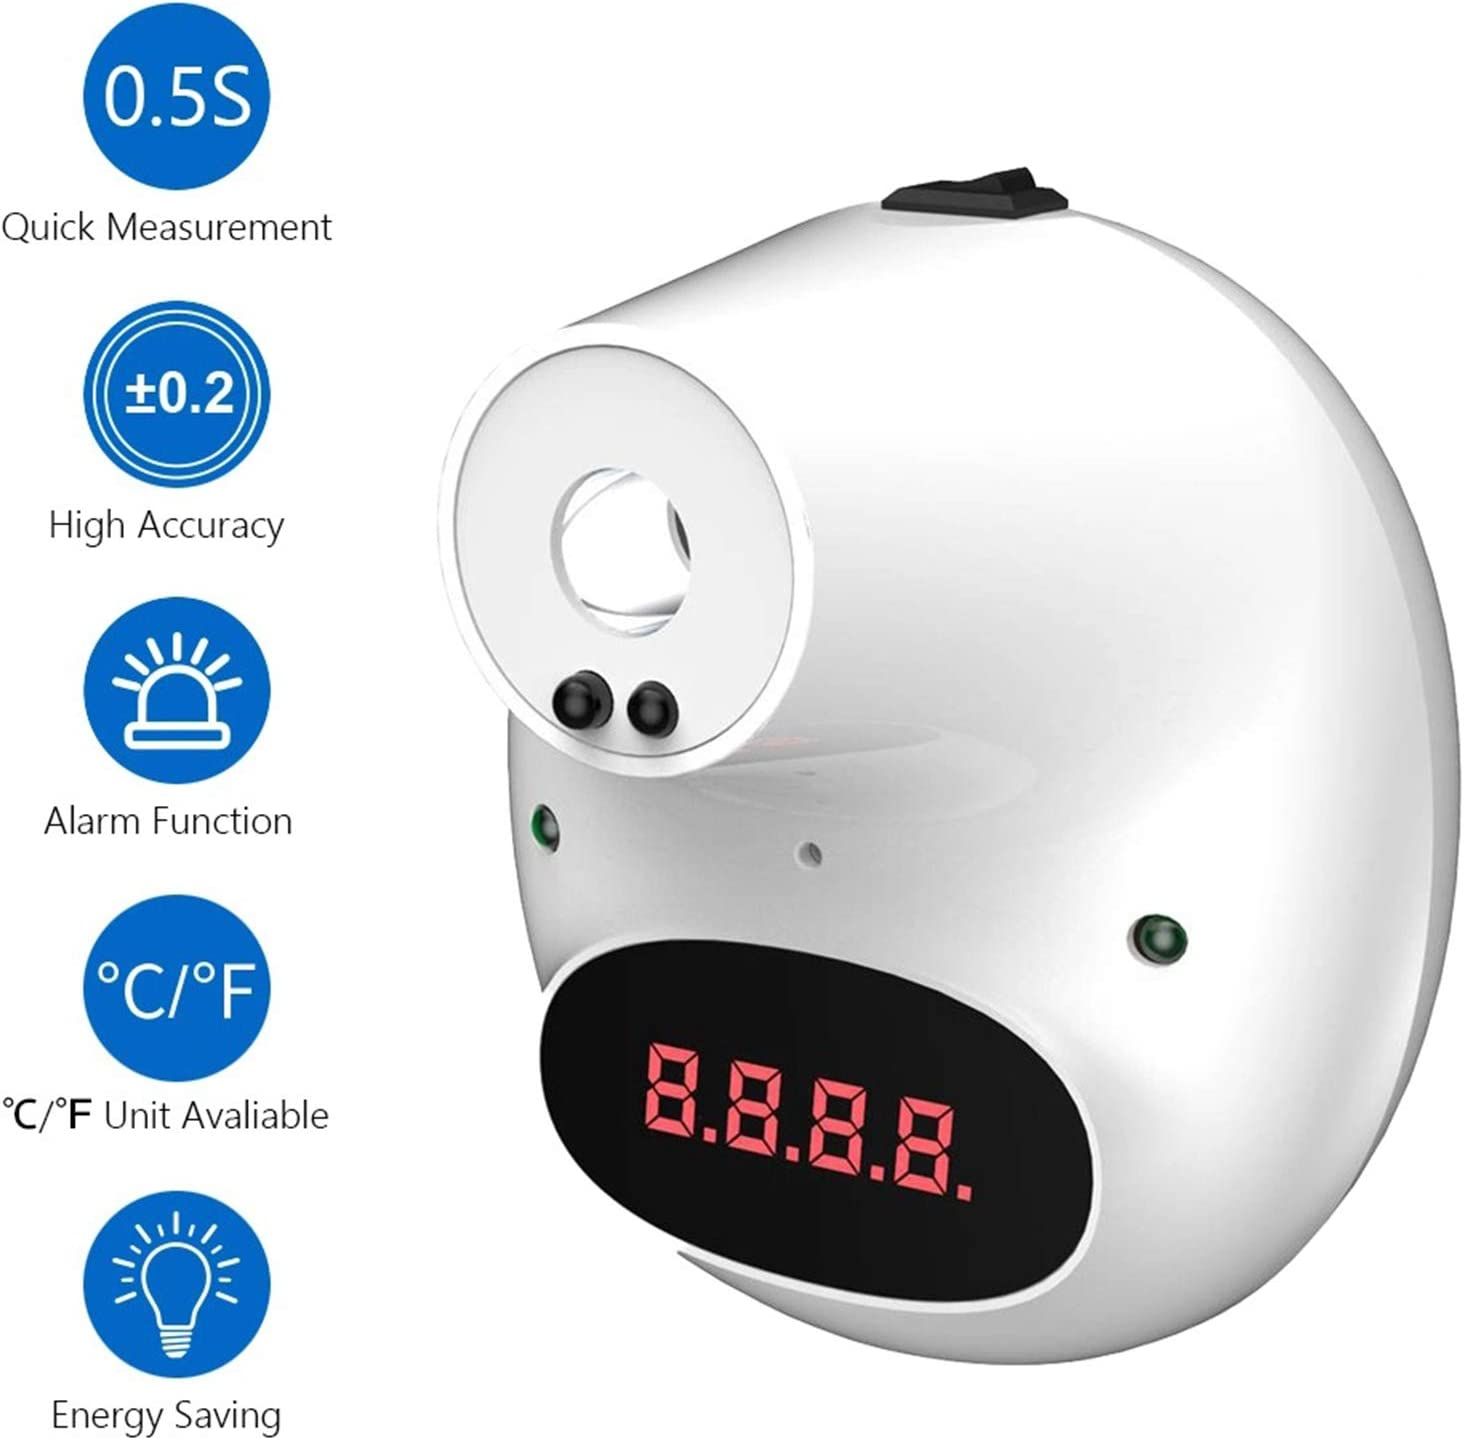 Factories Schools Shops Restaurants FGH Wall-Mounted Infrared Forehead Temperature Scanner Non-Contact Thermometer,Accurate Instant Reading,/ºC///ºF Displays,Fever Alarm,for Offices